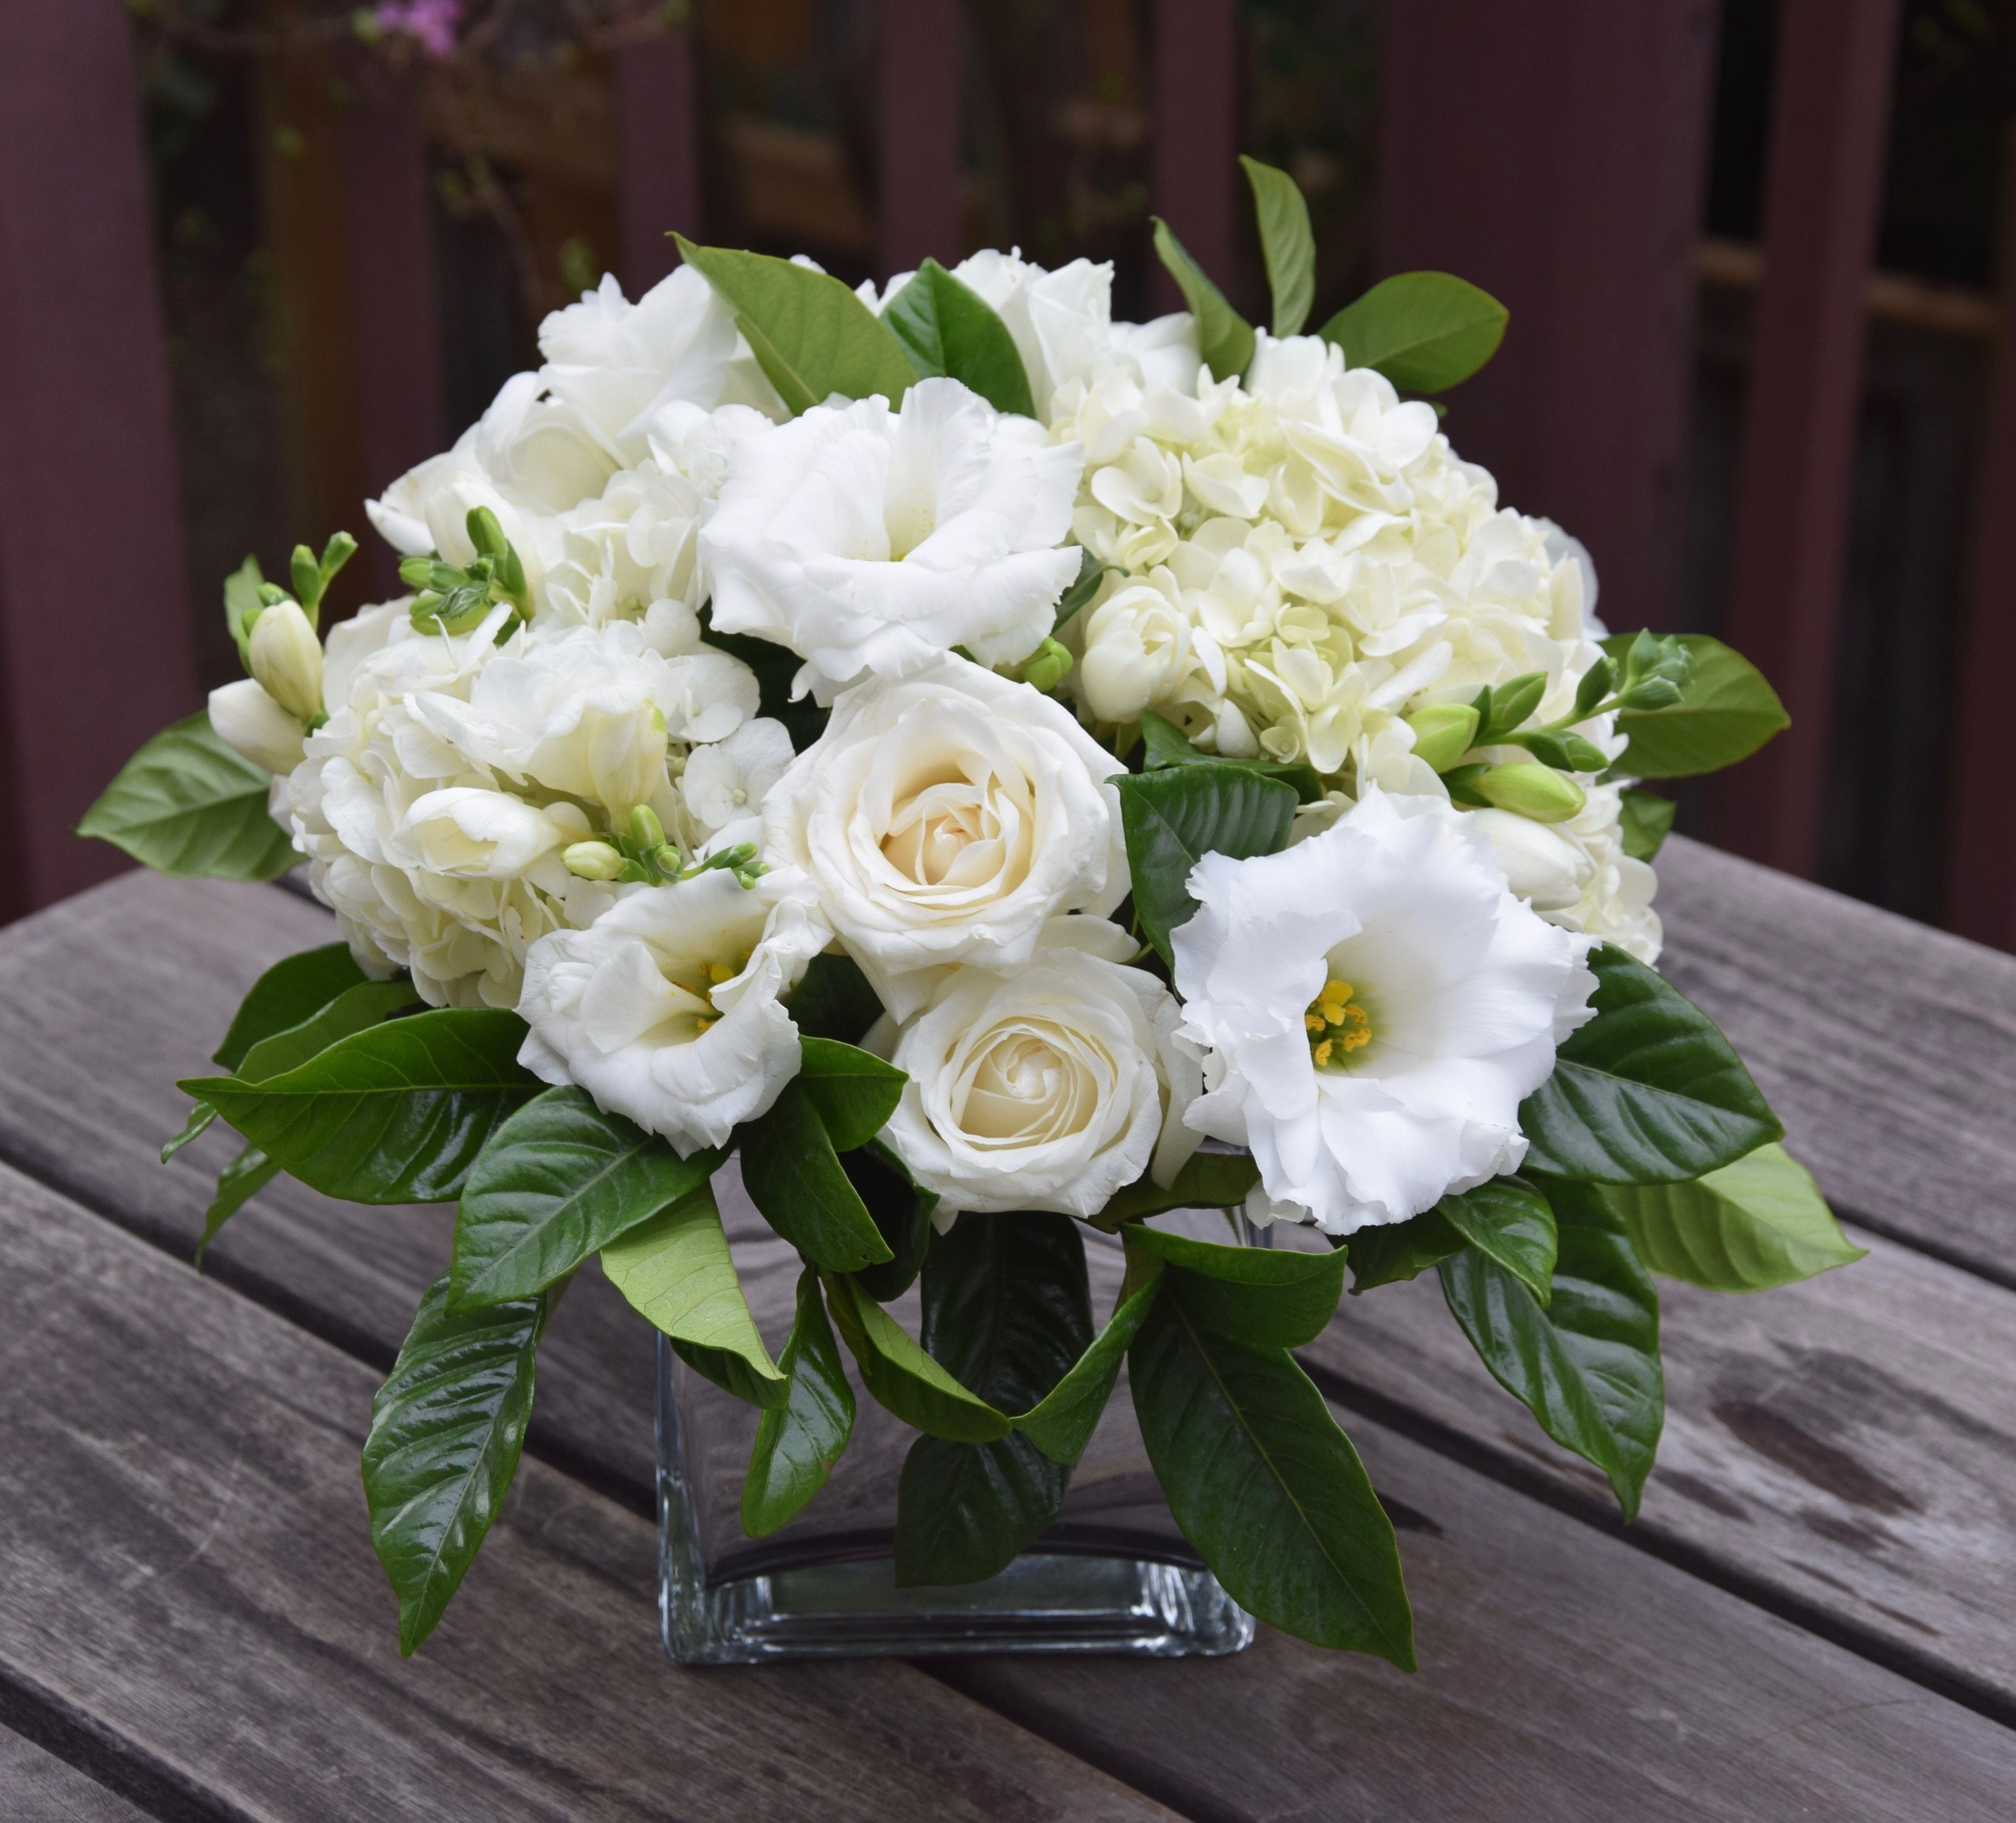 White And Green Fresh Flower Arrangement In A Vase With Gardenia